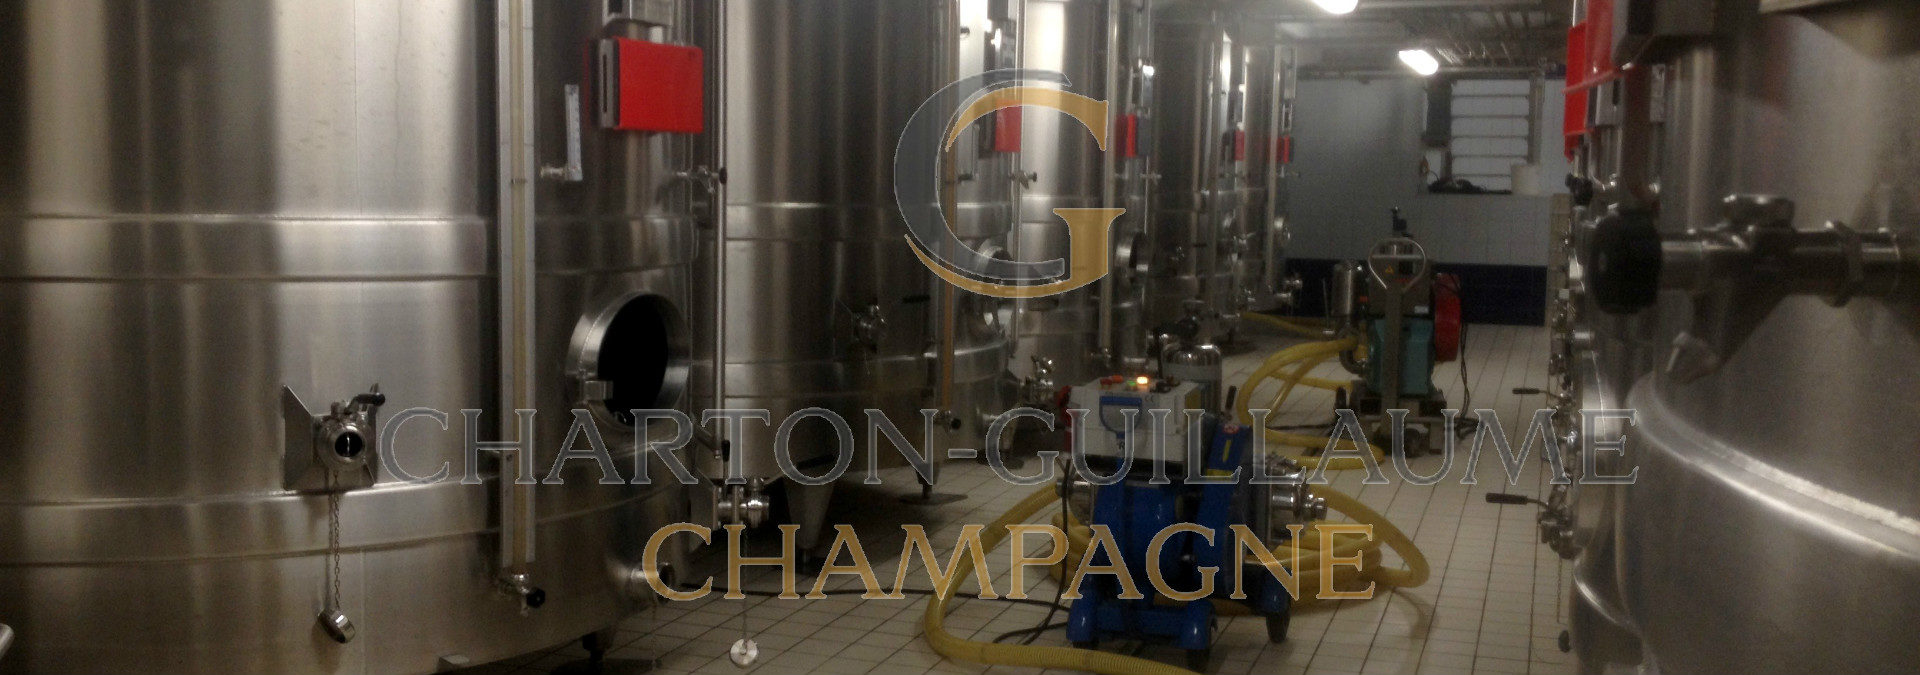 Champagne Charton-Guillaume